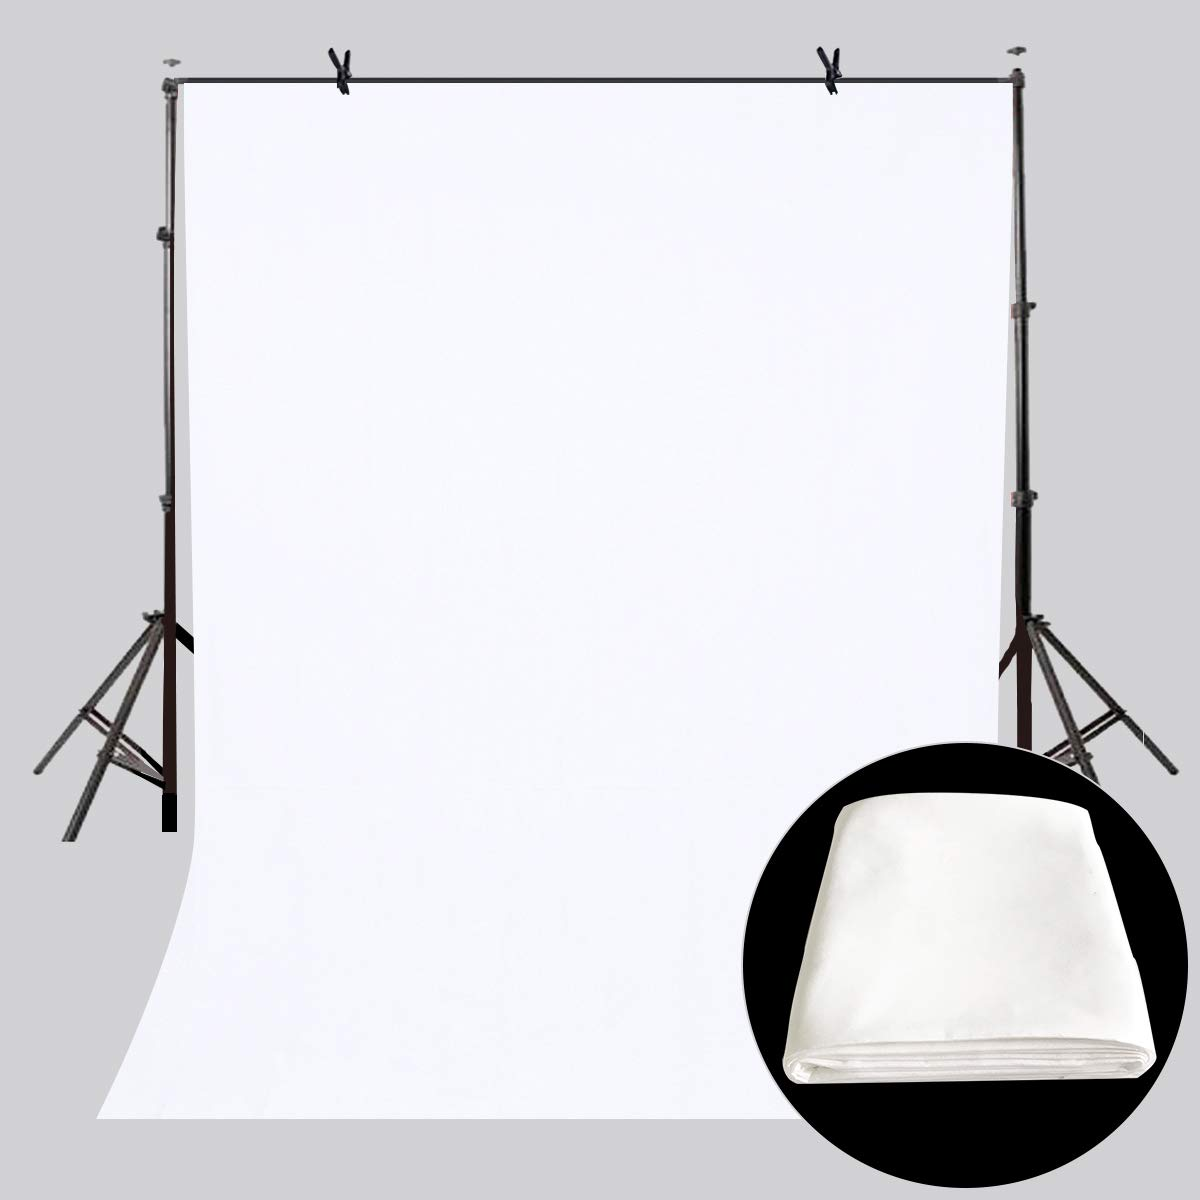 LYLYCTY 5x7ft Backdrop White Screen Key Soft Pure White Studio Background ID Photo Photography Backdrop Photo Backdrops Customized Studio Photography Backdrop Background Studio Props LY164